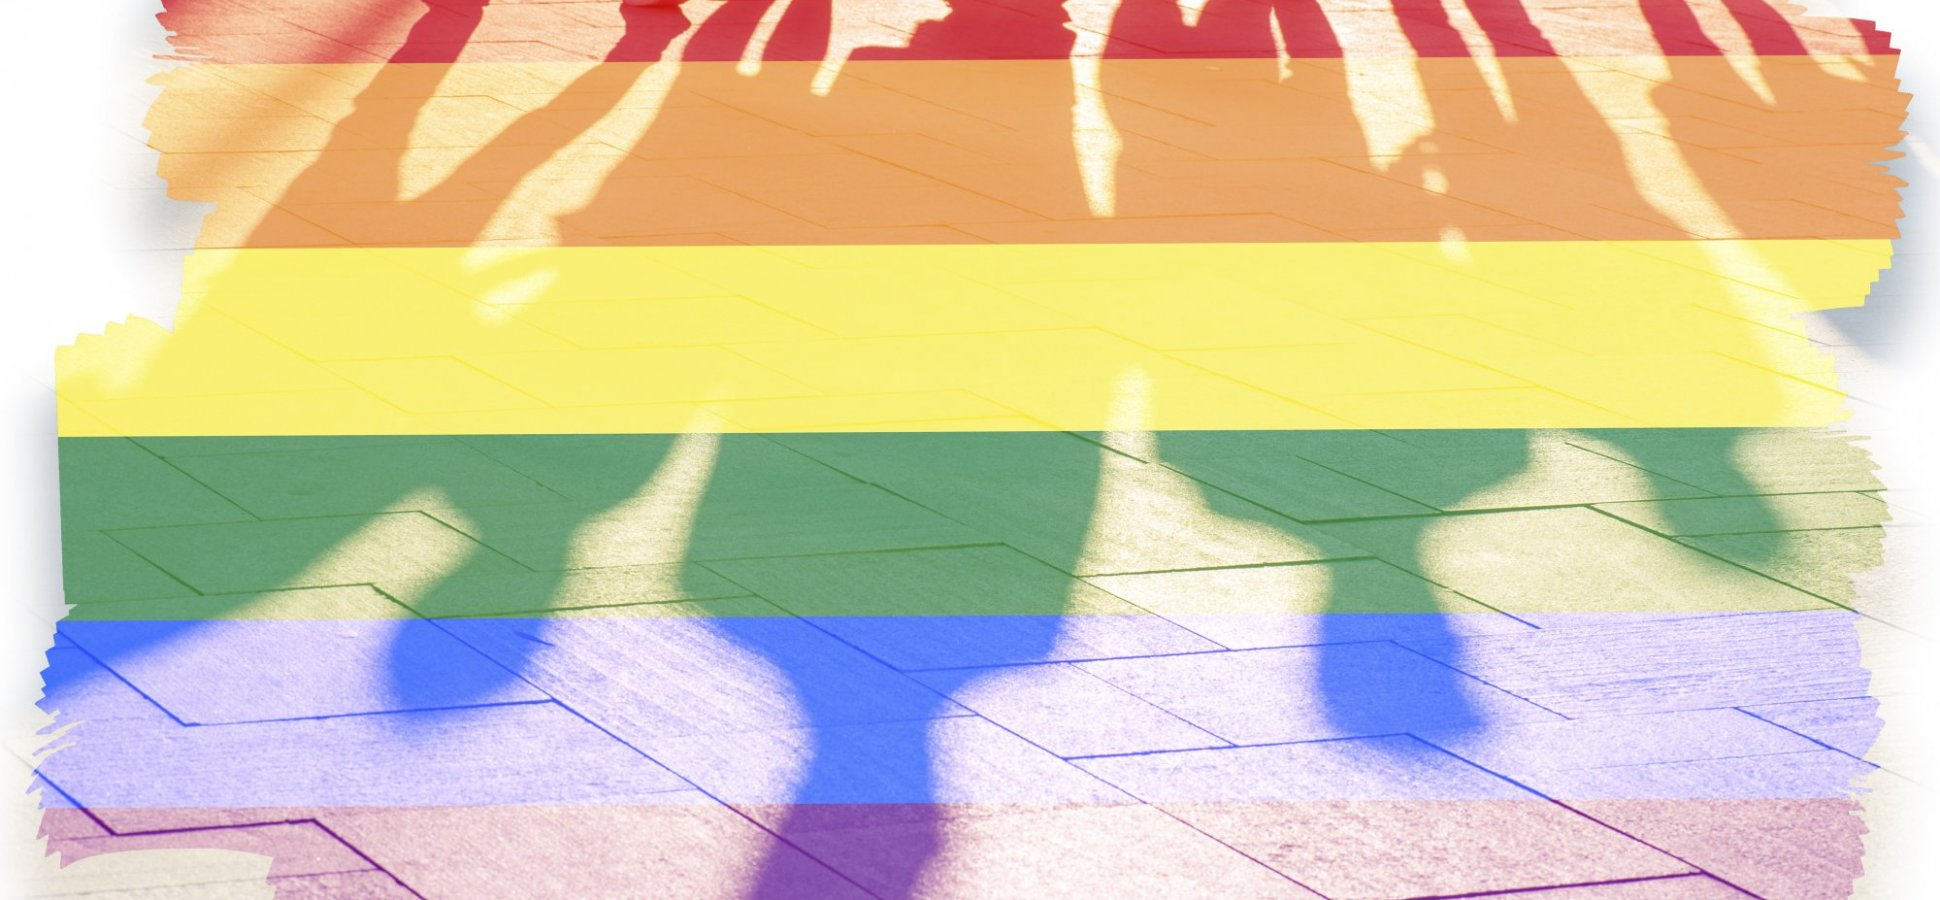 4 Helpful Resources for LGBTQ Business Owners